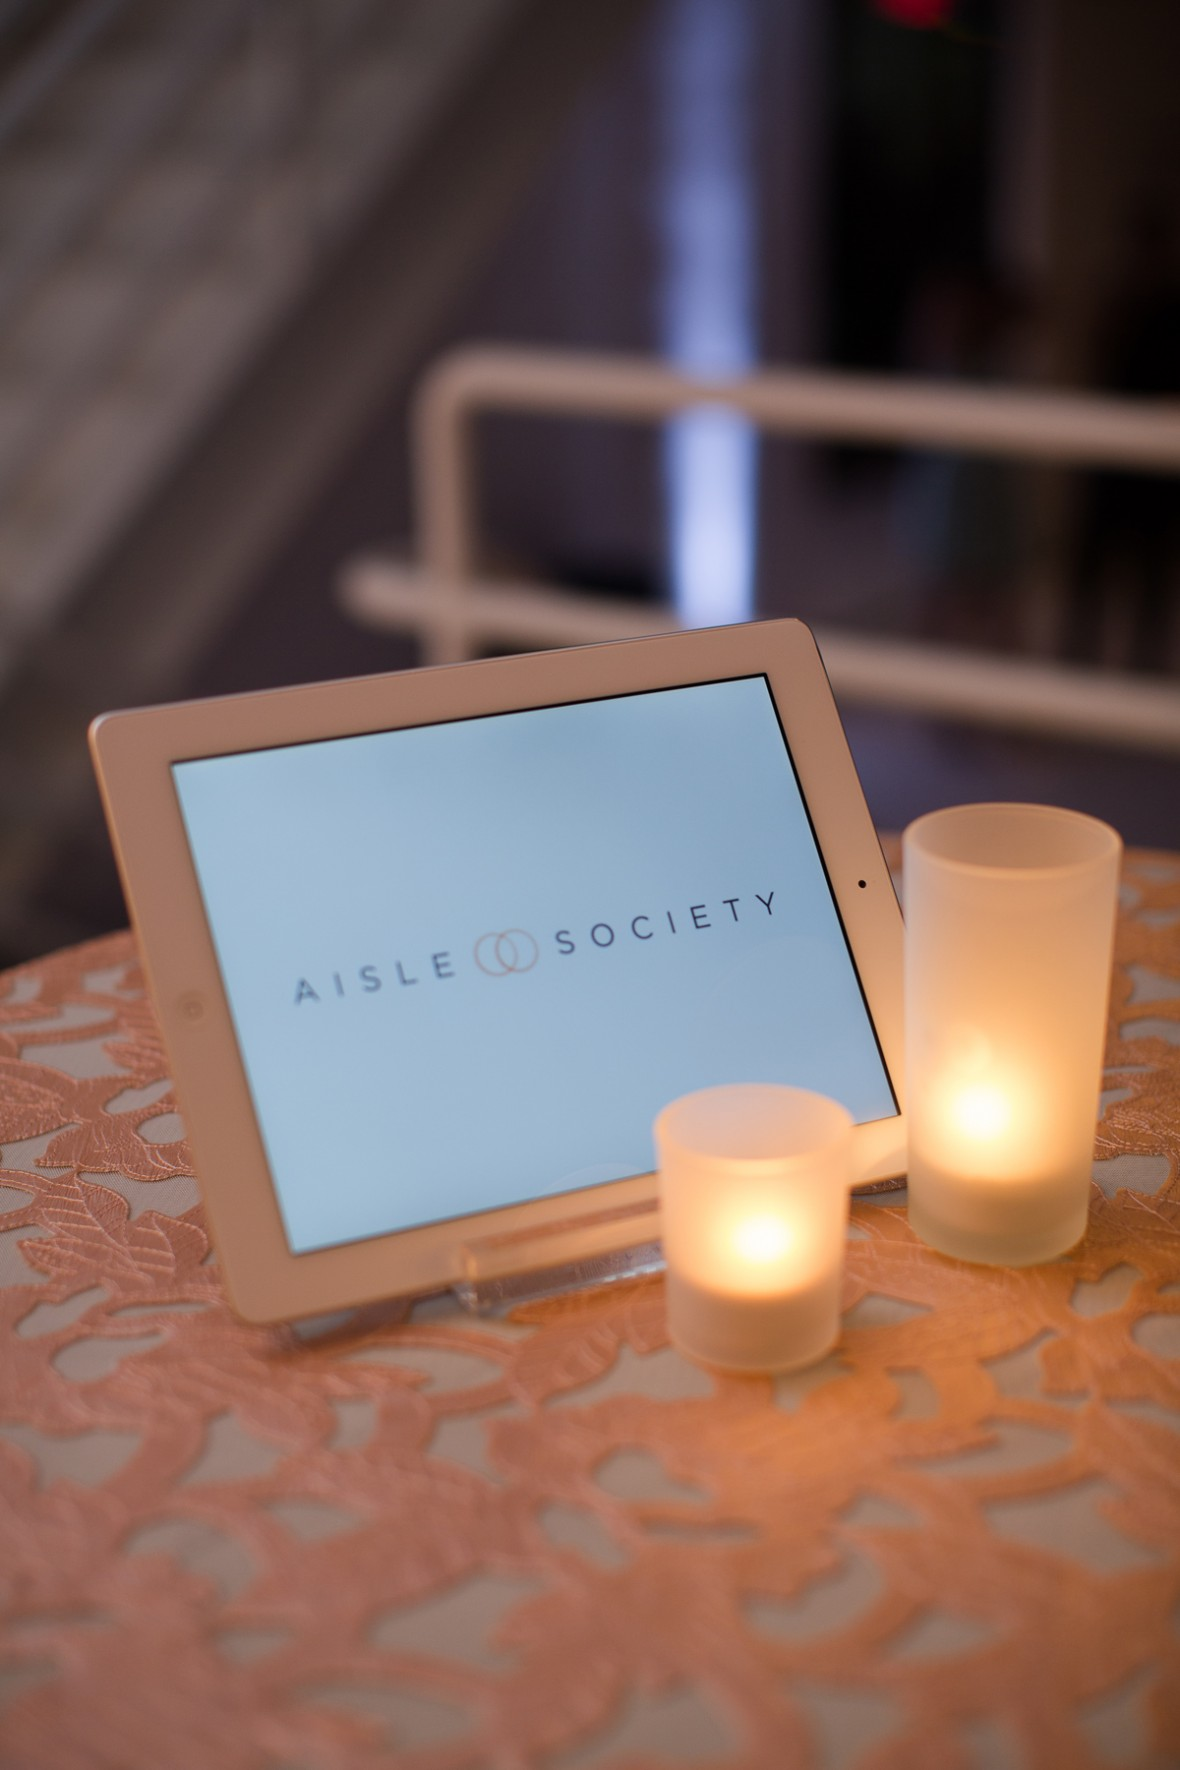 iPad Slideshow - Aisle Society Debut Party - Sponsored by Minted